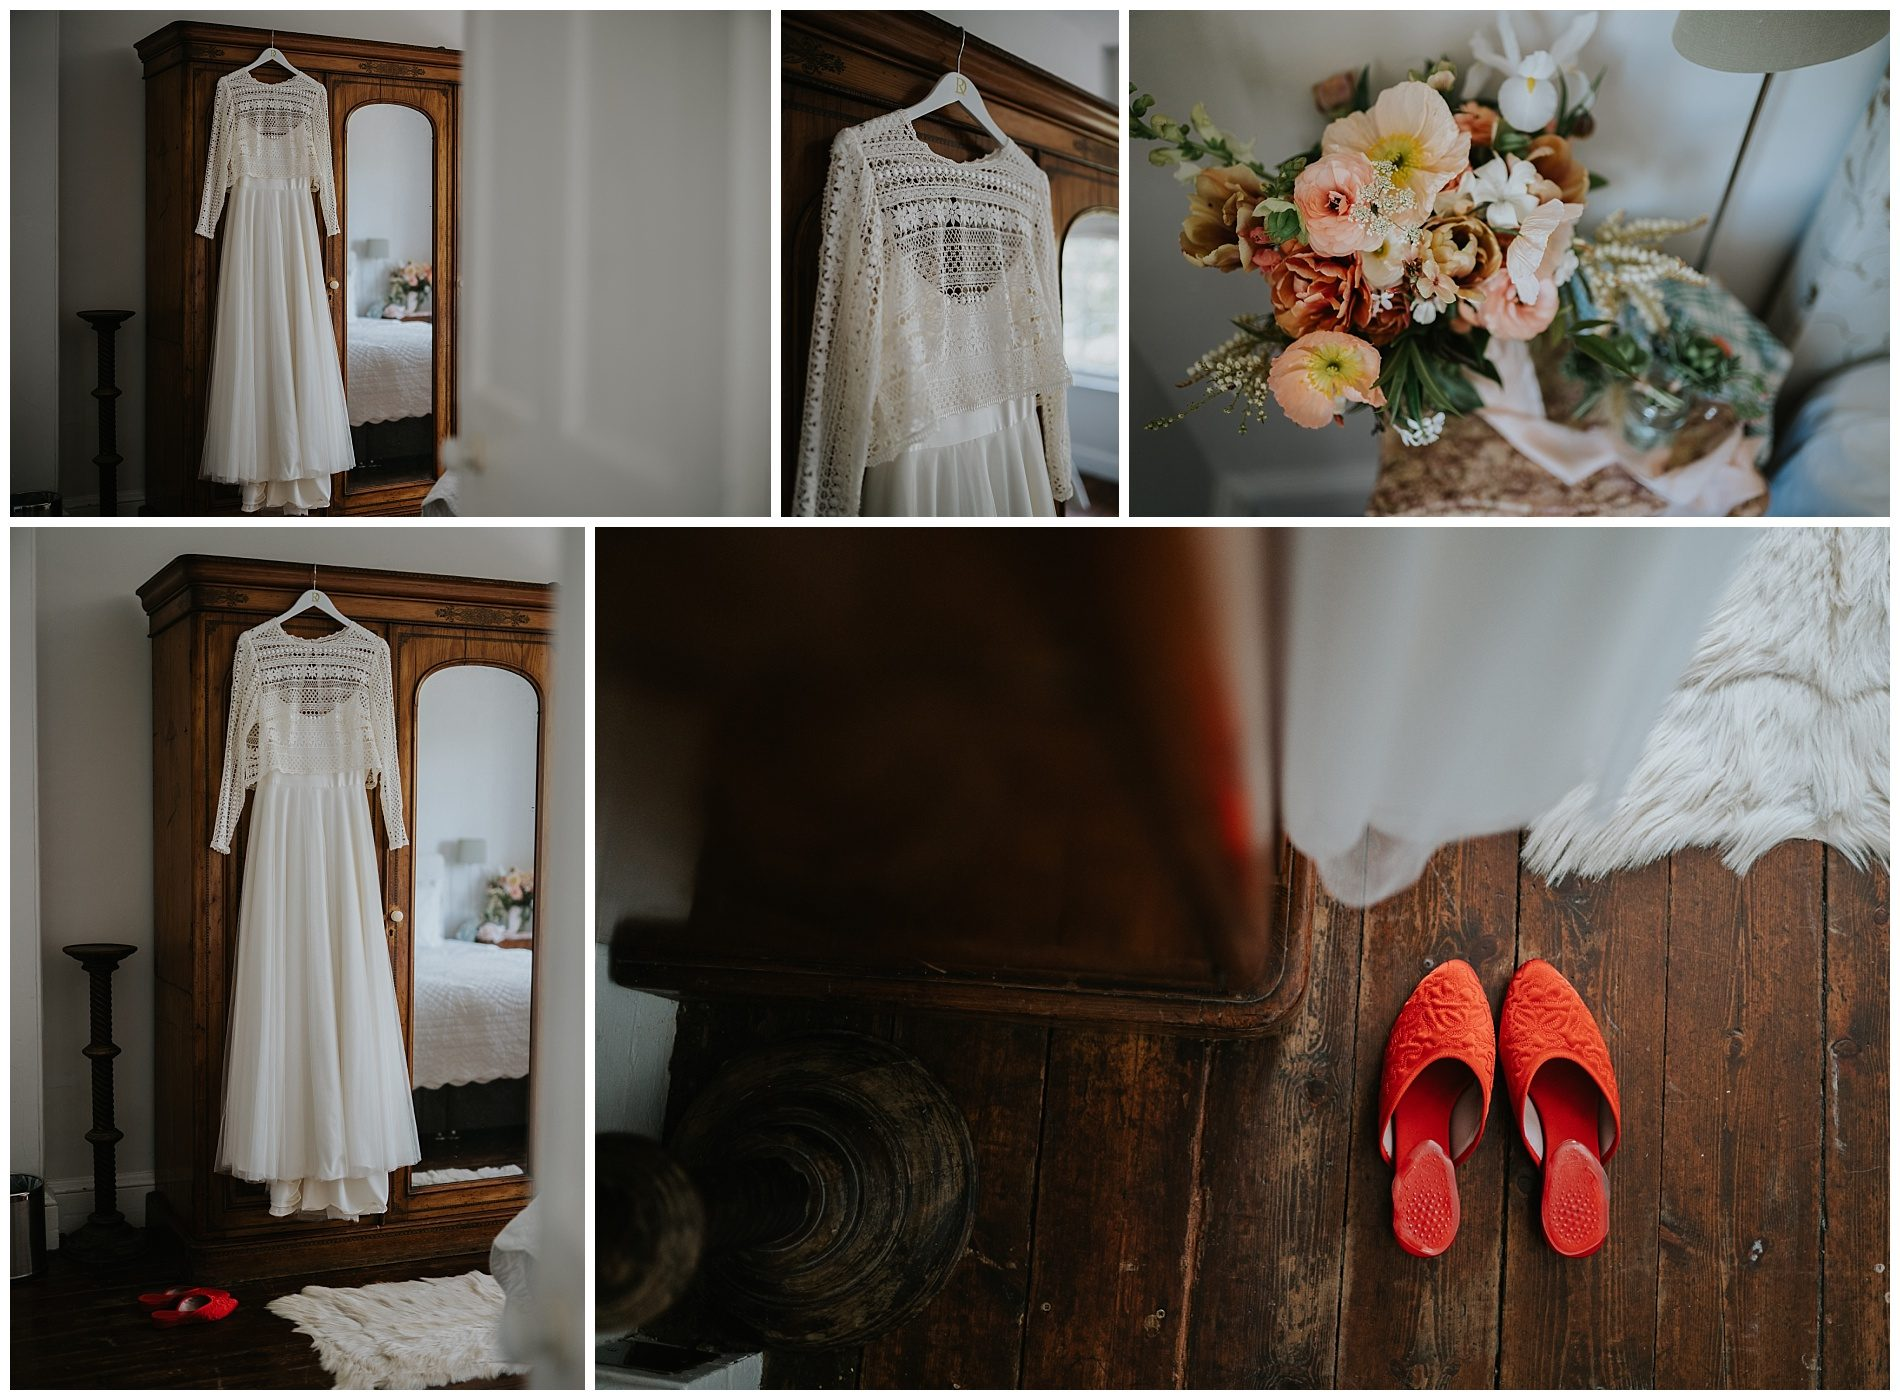 Bridal gown and red shoes